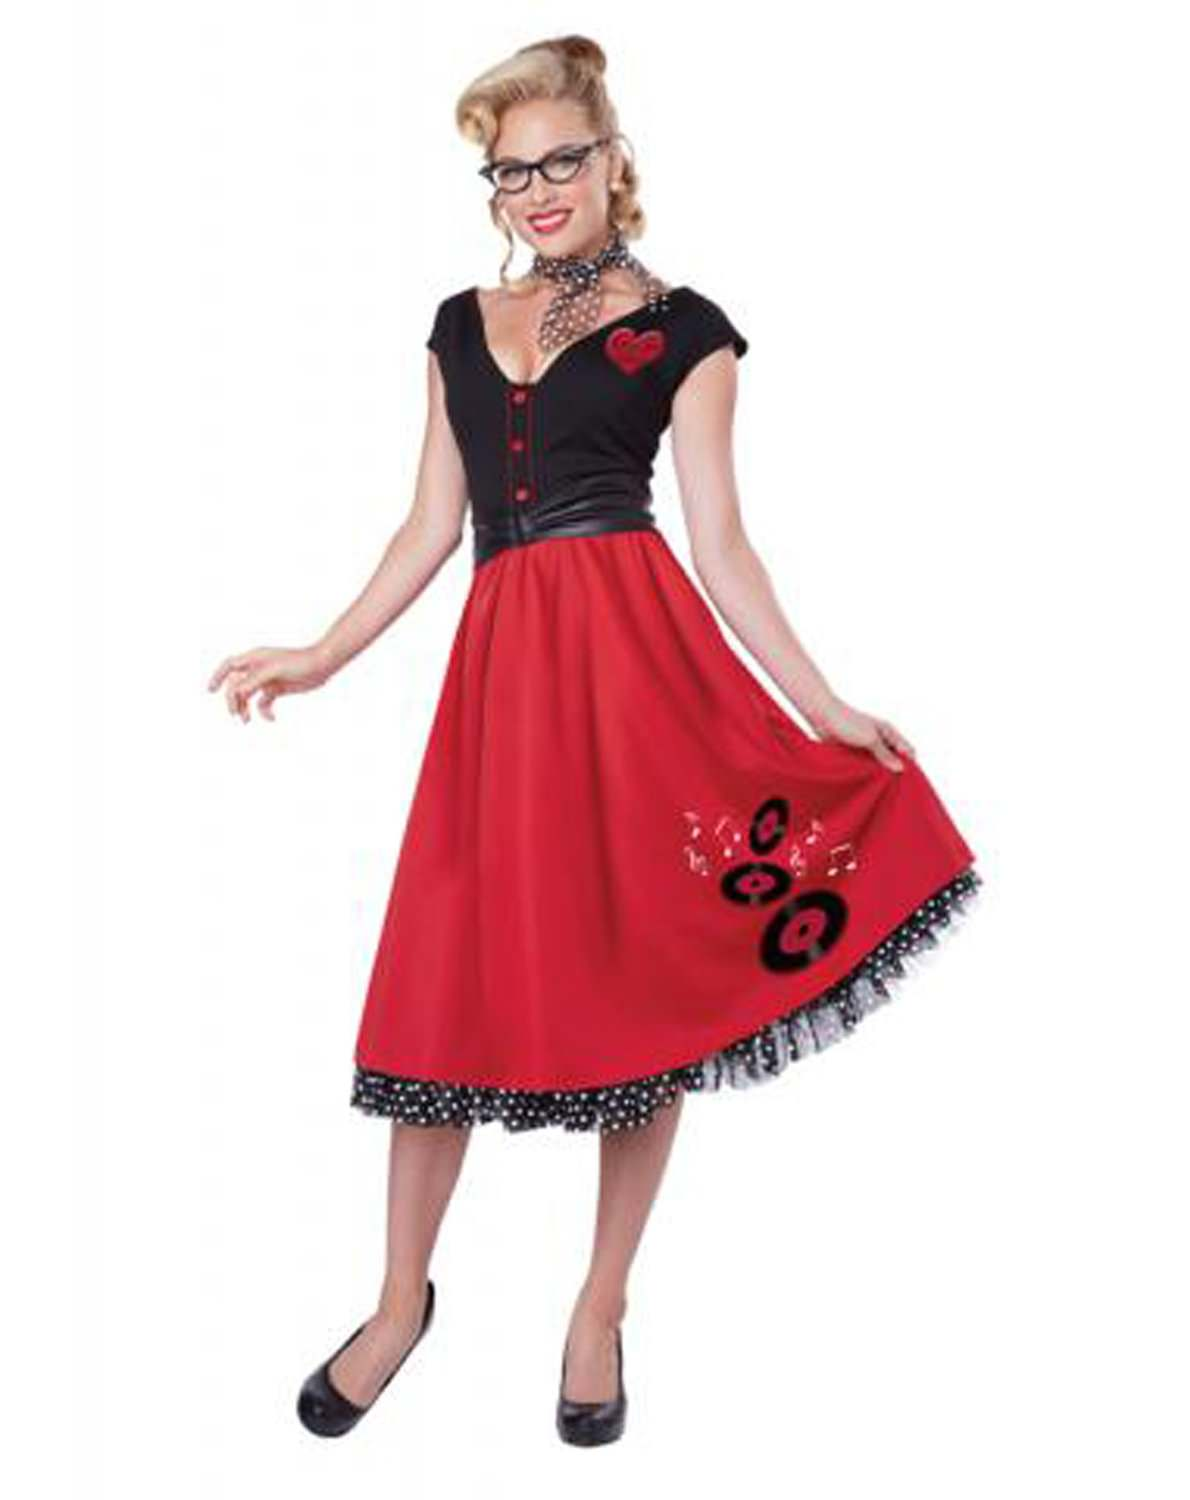 Carlifornia Costumes For Women